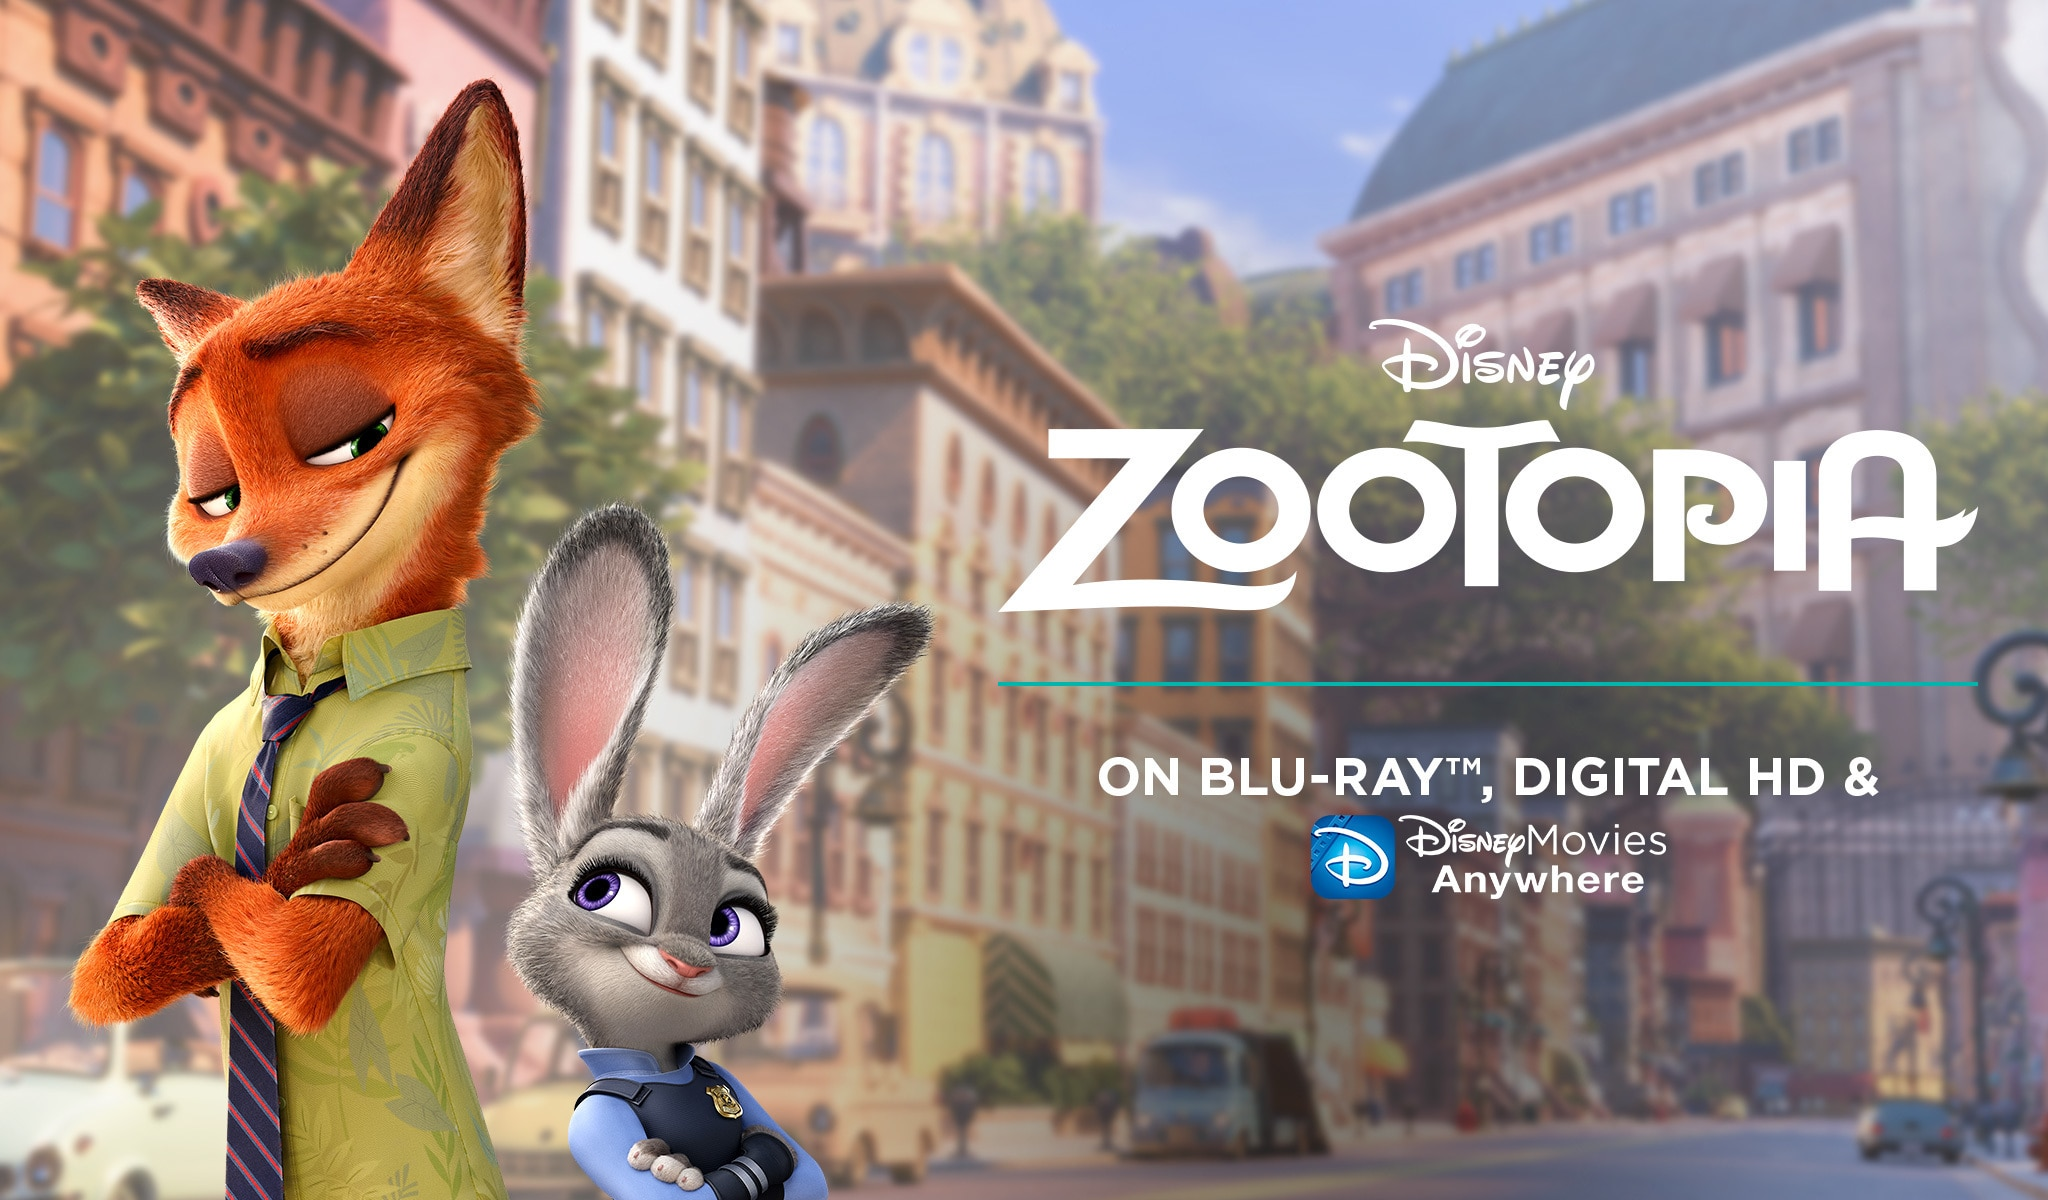 Zootopia On BluRay and Digital HD